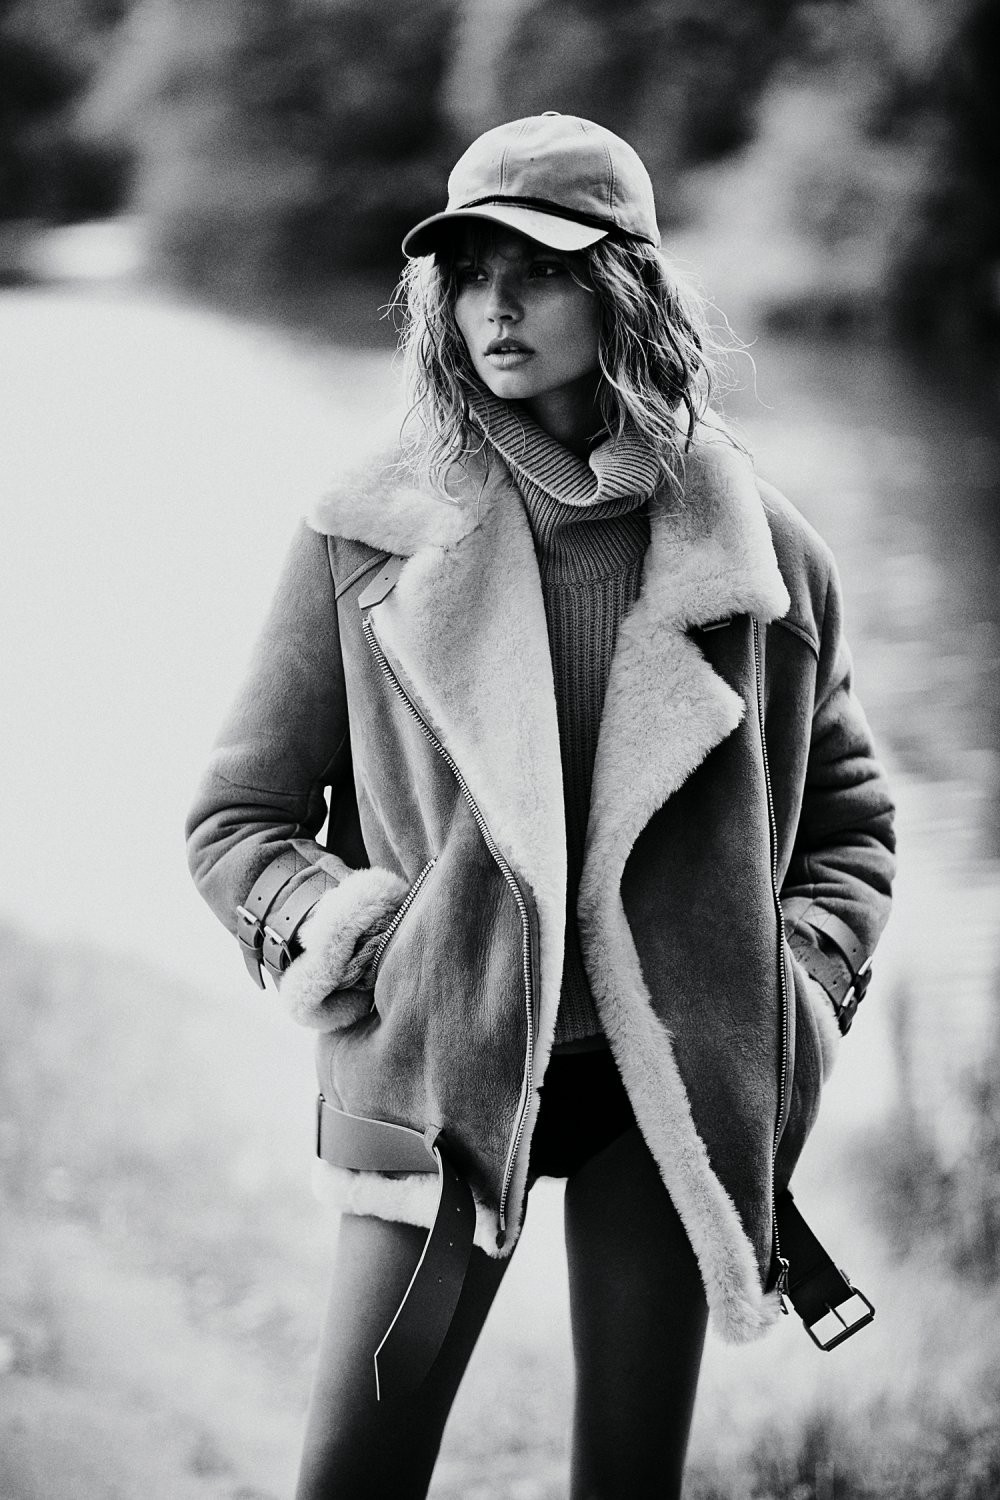 magdalena-frackowiak-by-emma-tempest-for-mixte-magazine-9-fall-winter-2014-2015-9